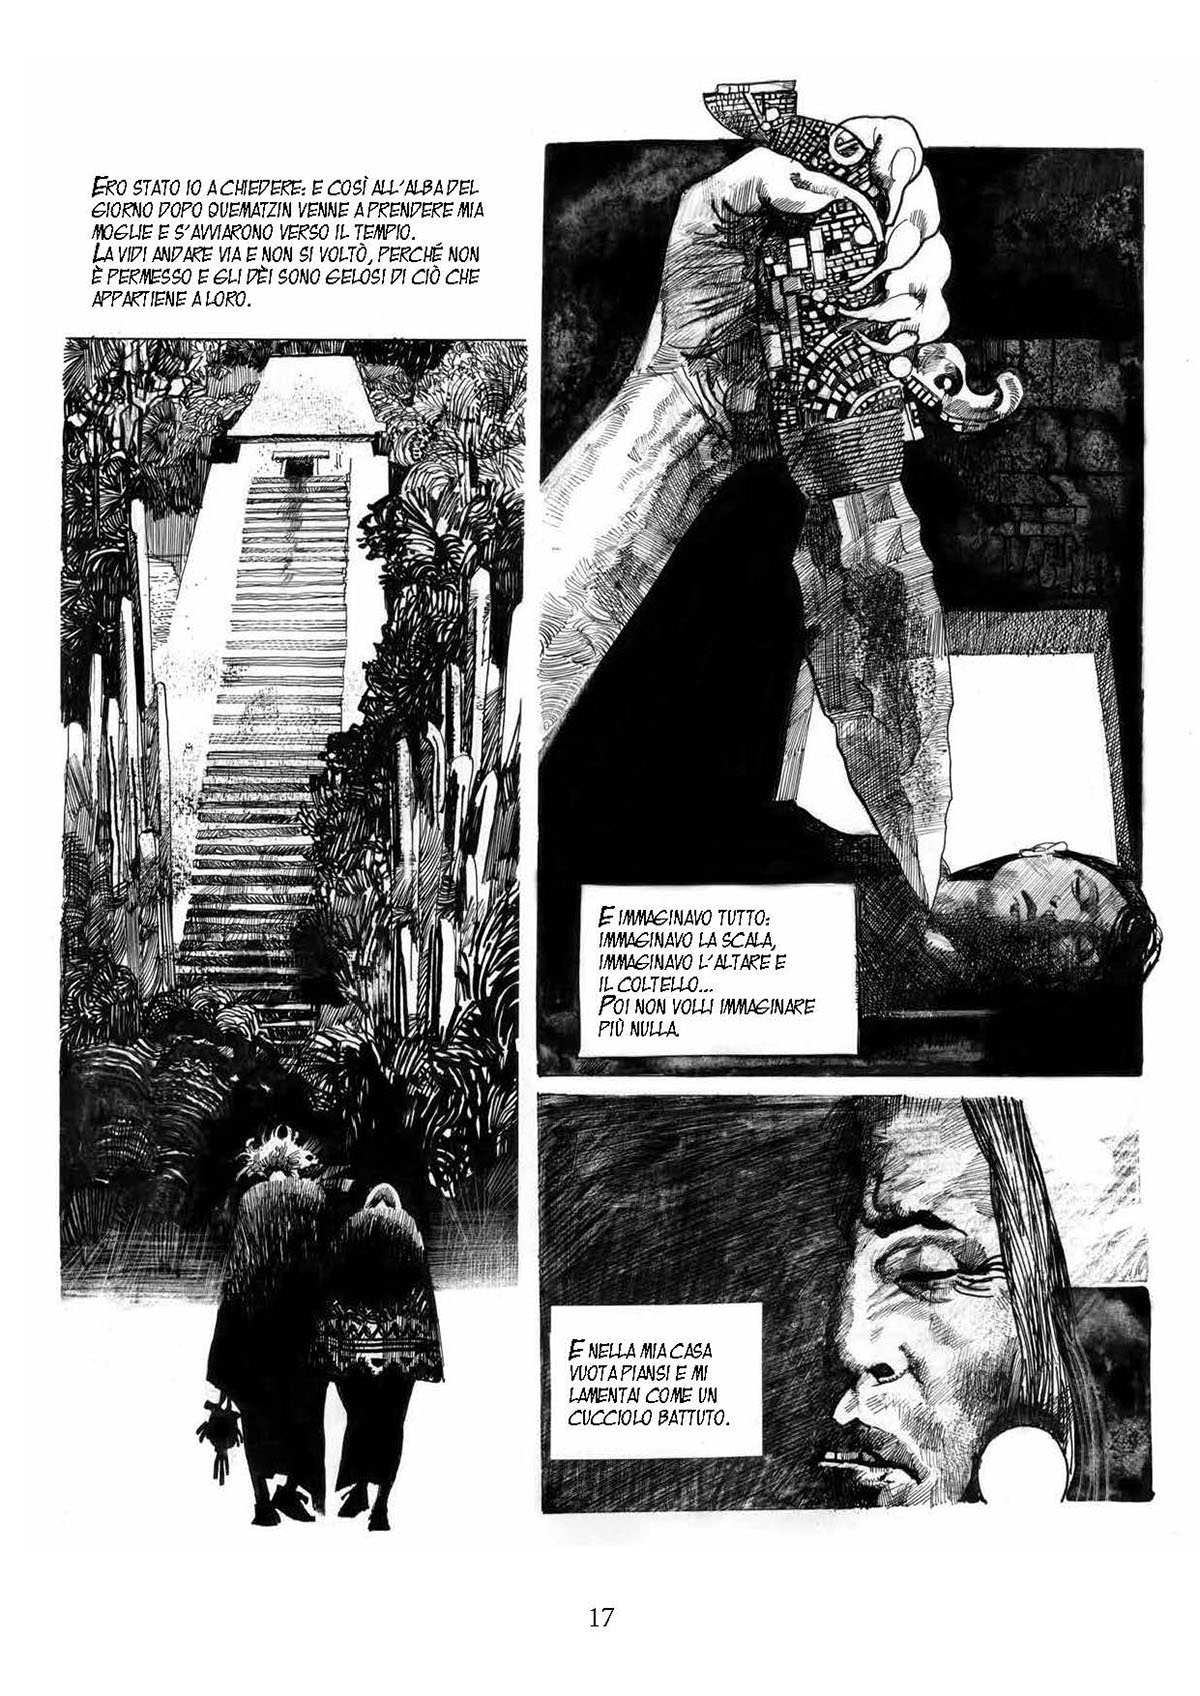 PREVIEW Chapungo_Pagina_11